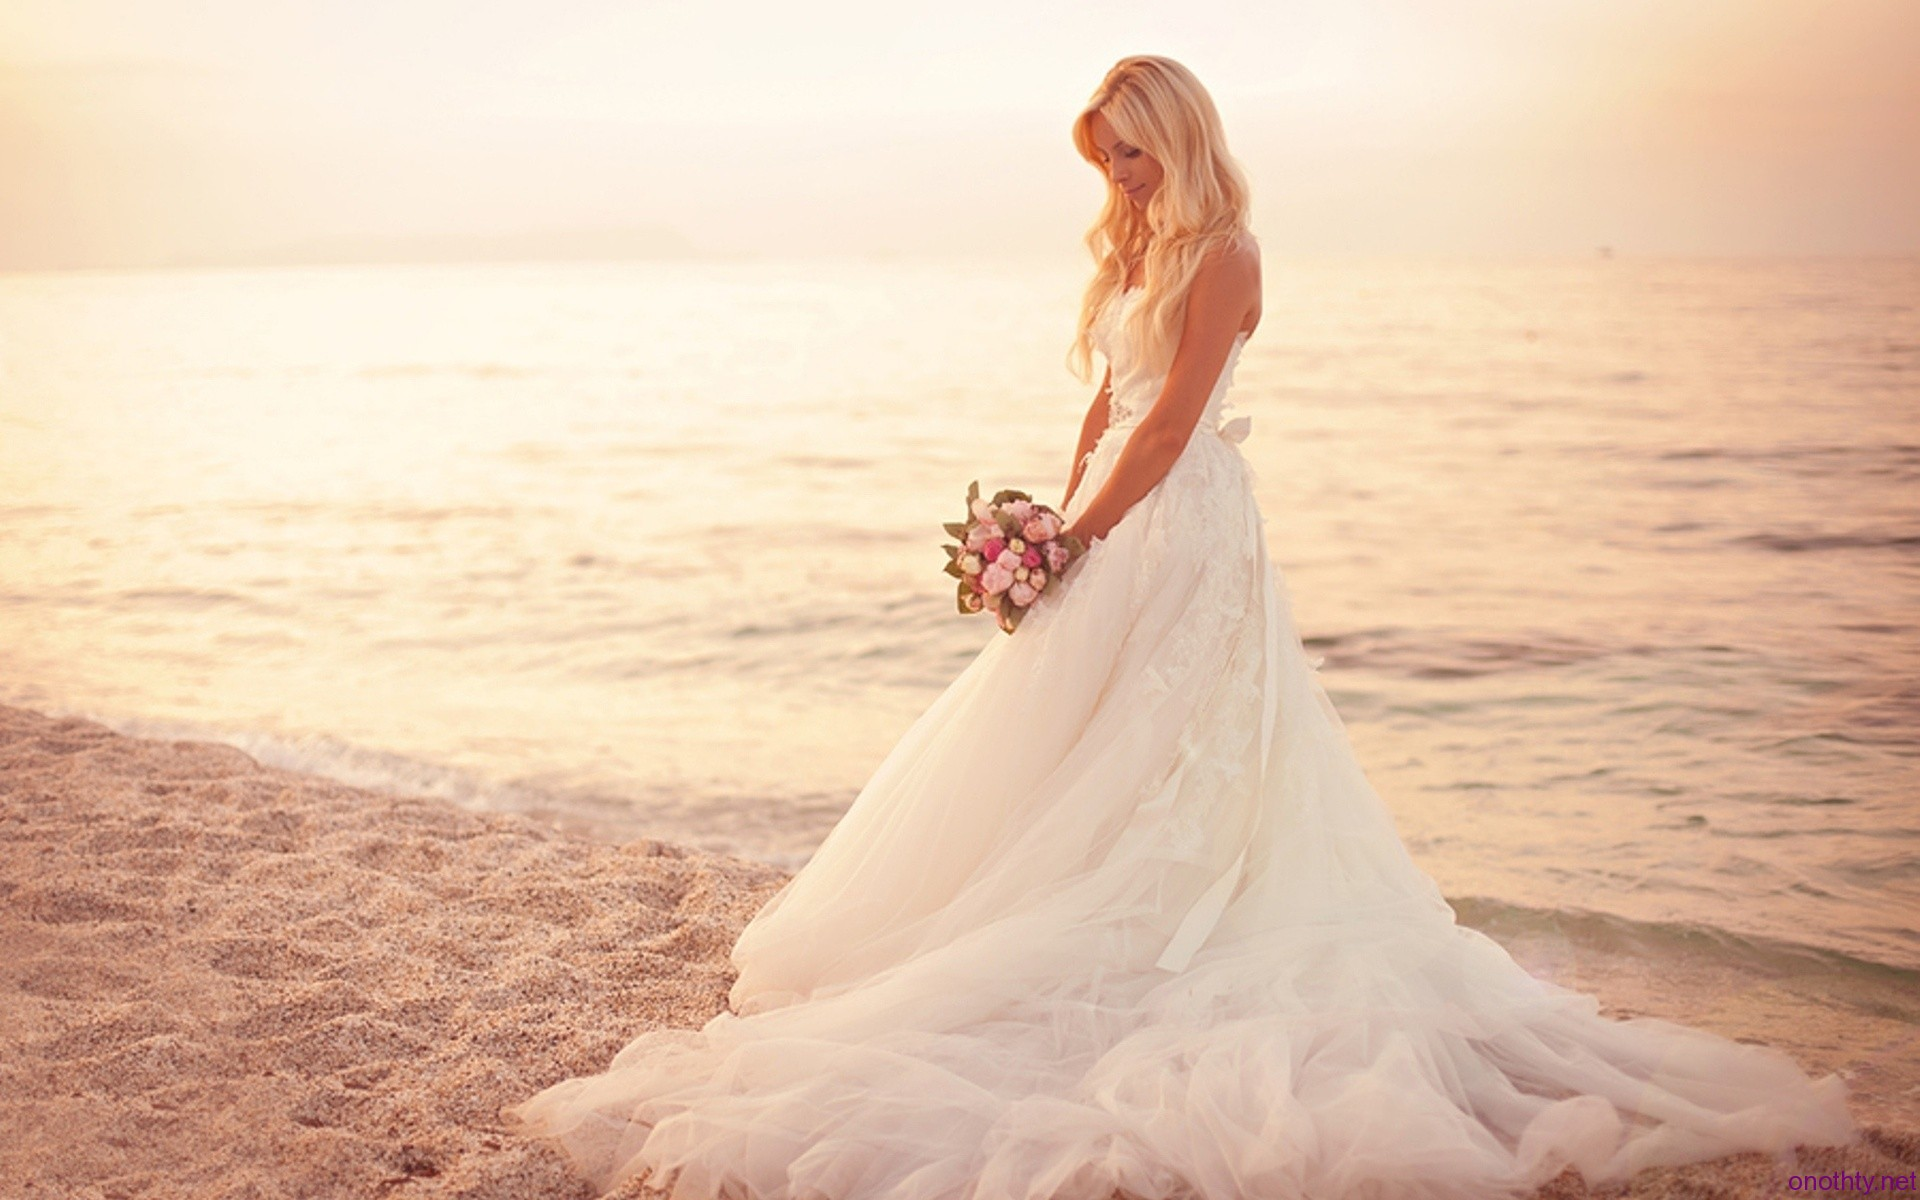 25 Beautiful Beach Wedding Dresses - photo#31